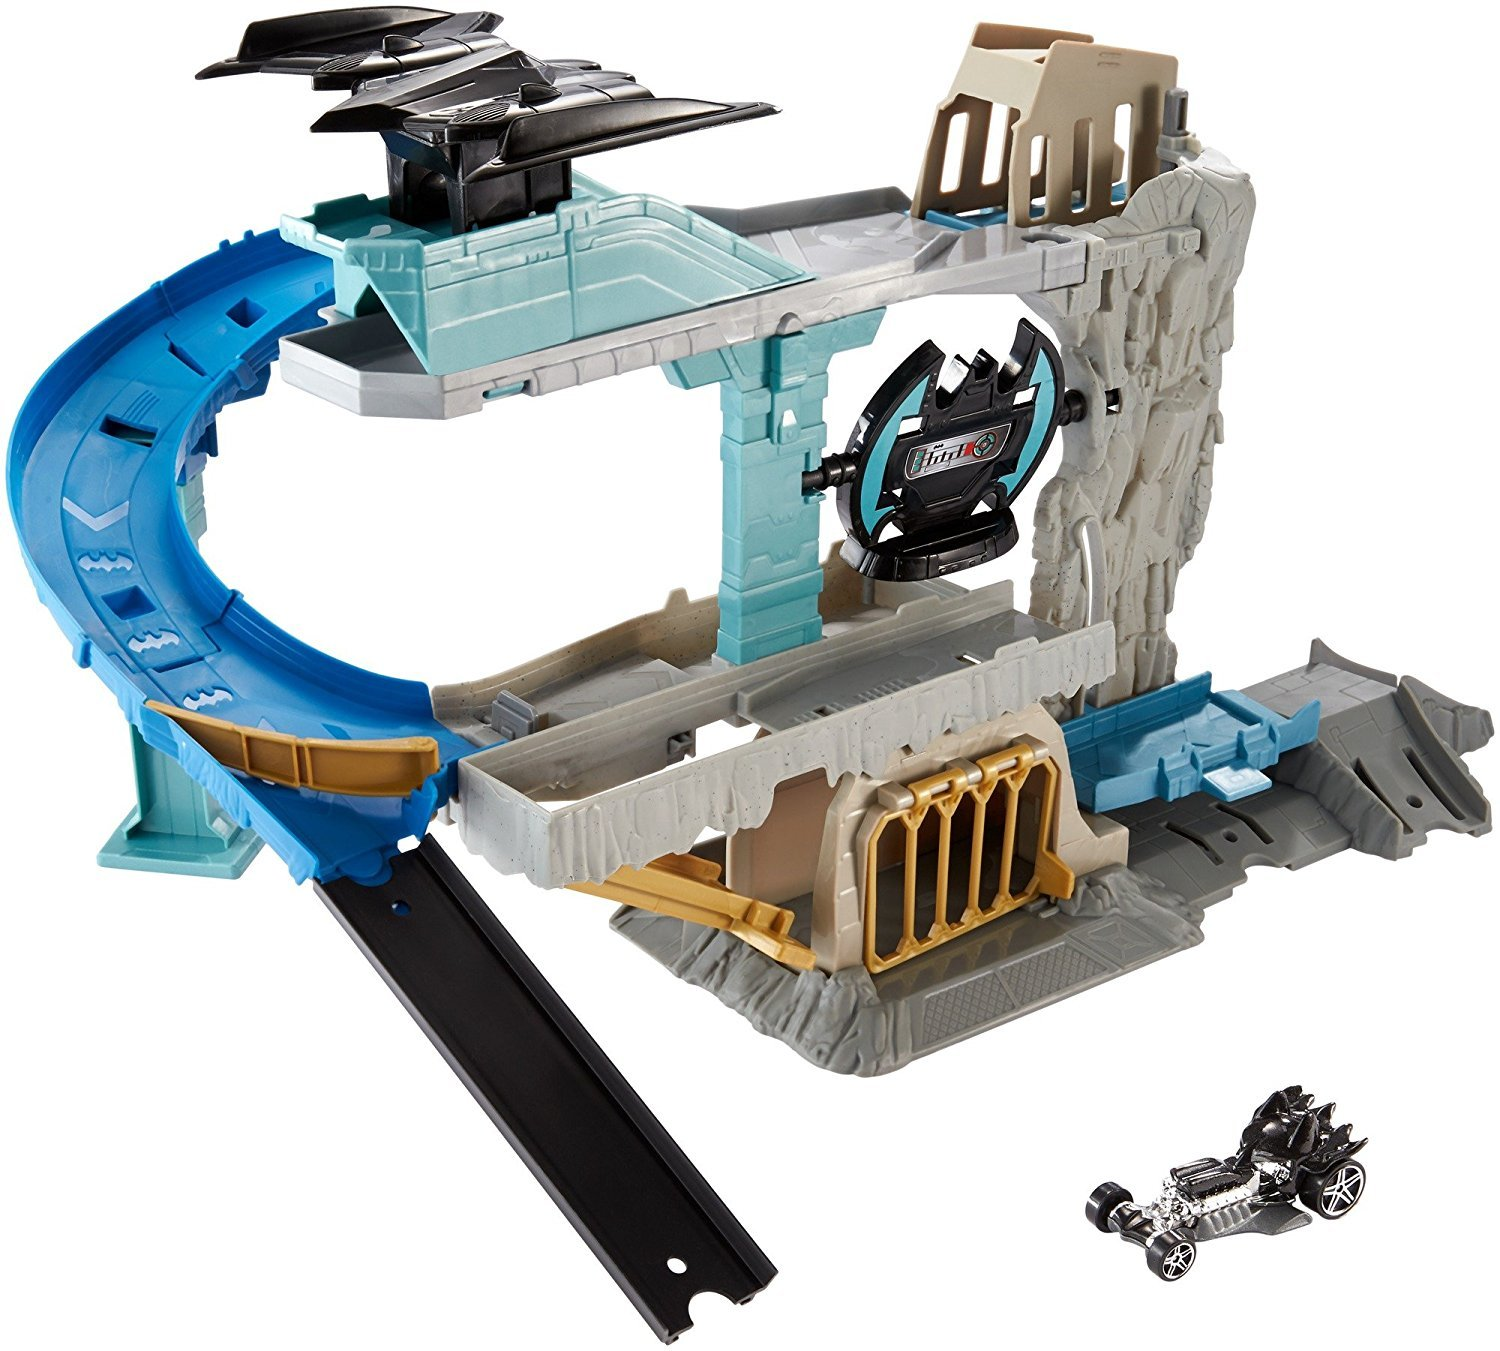 Hot Wheels DC Comics Batman Expanding Batcave Playset Mattel FLP08